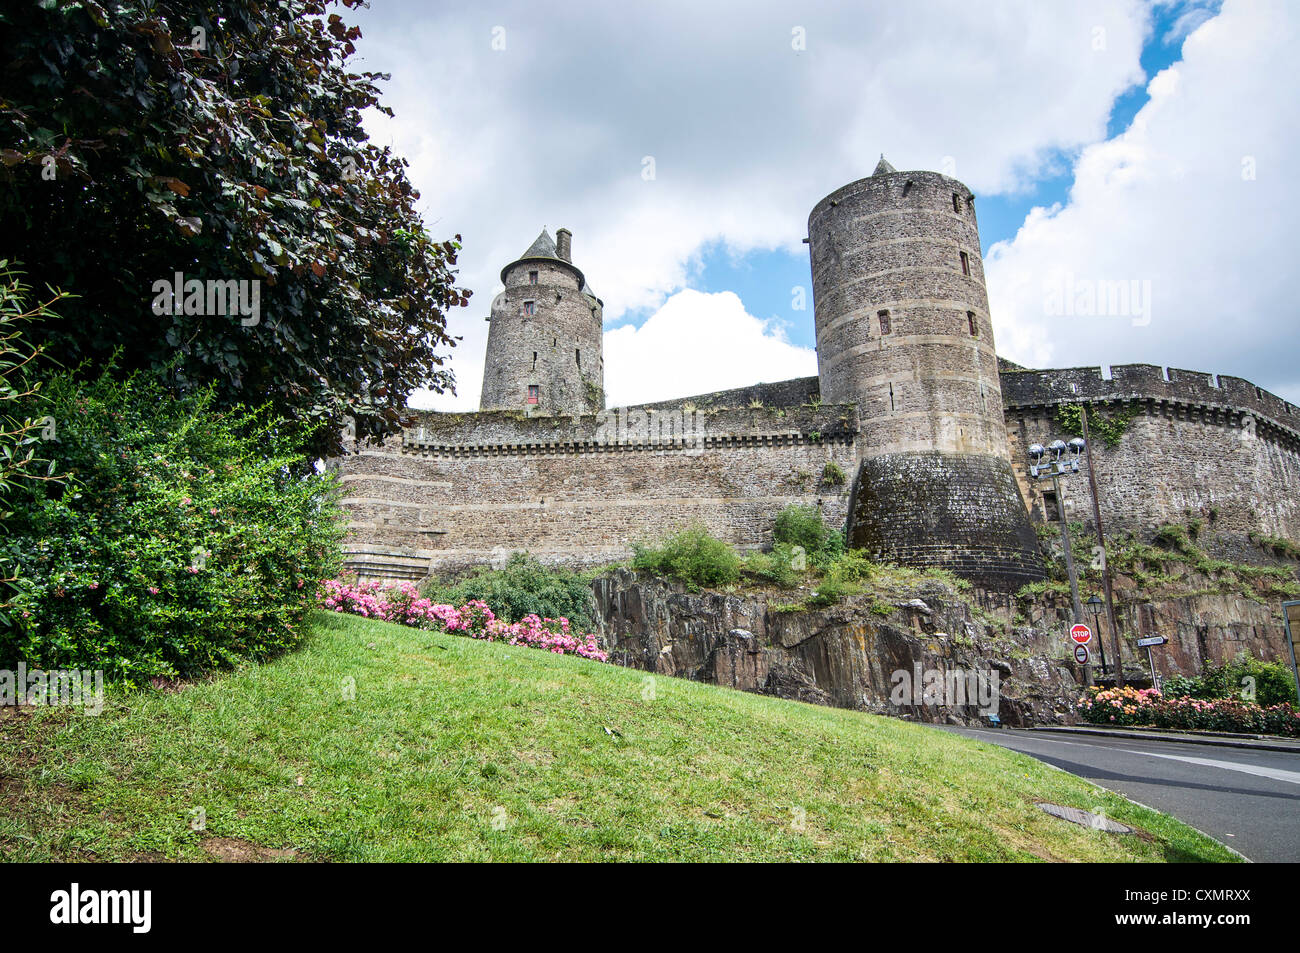 Round stone towers visible in the wall of the fortified medieval stronghold Chateau de Fougeres in Brittany, France. - Stock Image